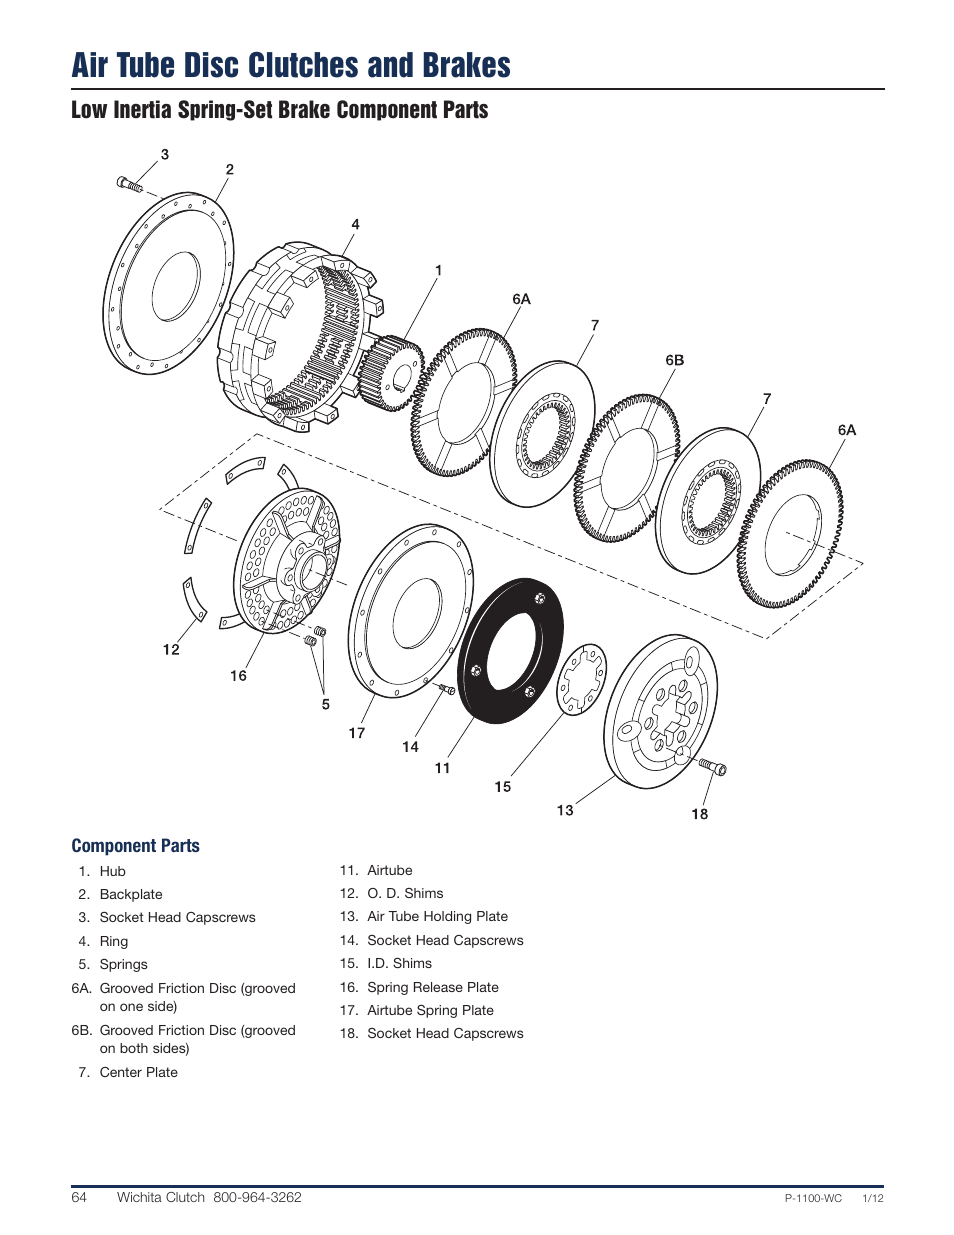 Air tube disc clutches and brakes, Low inertia spring-set